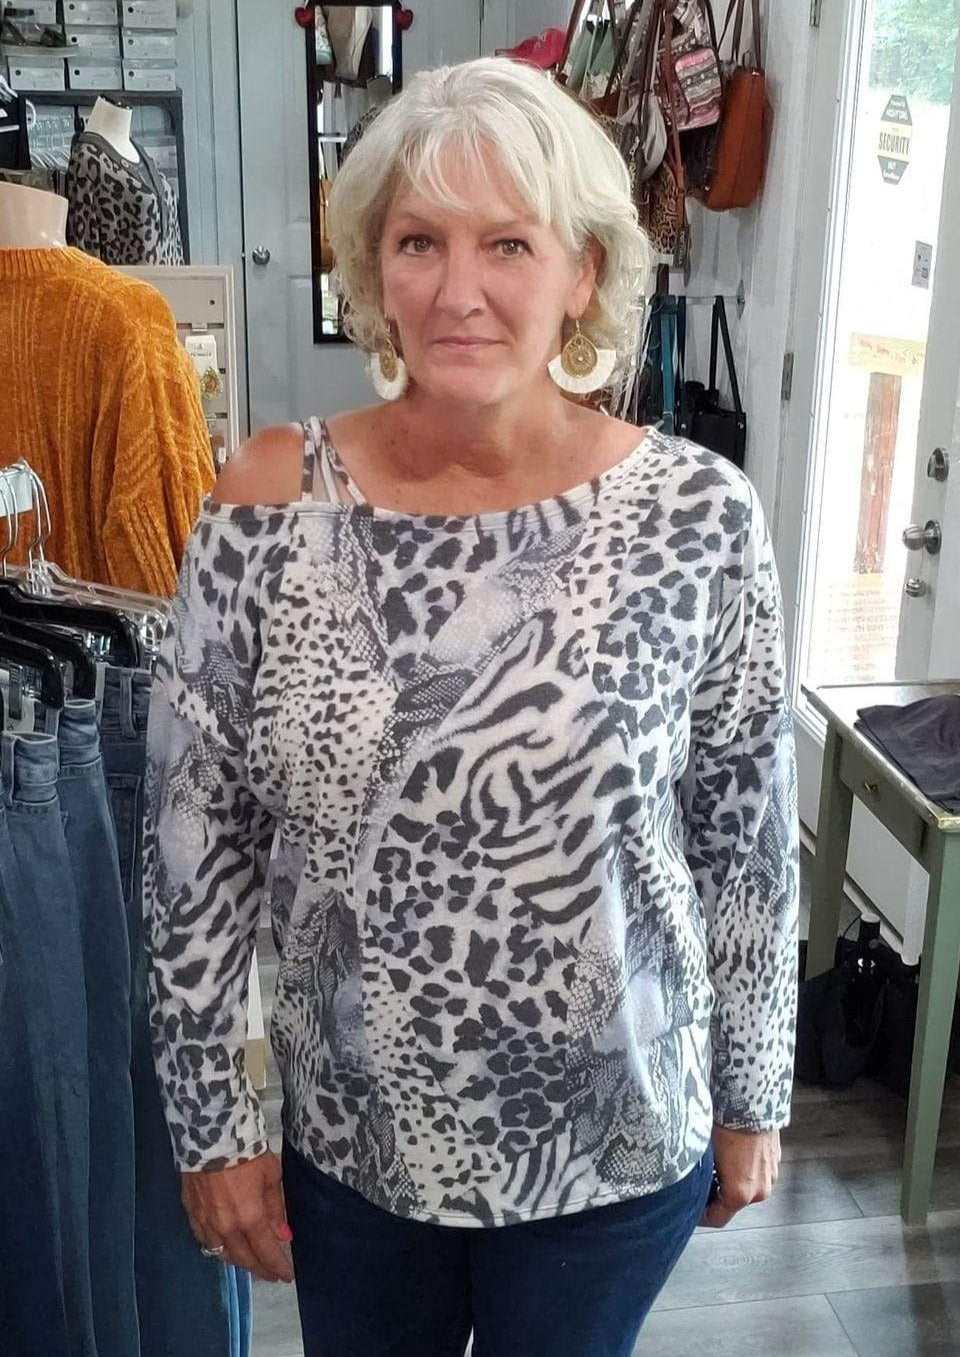 Shirt Animal Print Terry One Shoulder Top (XL fits like 2X - Plus Size)